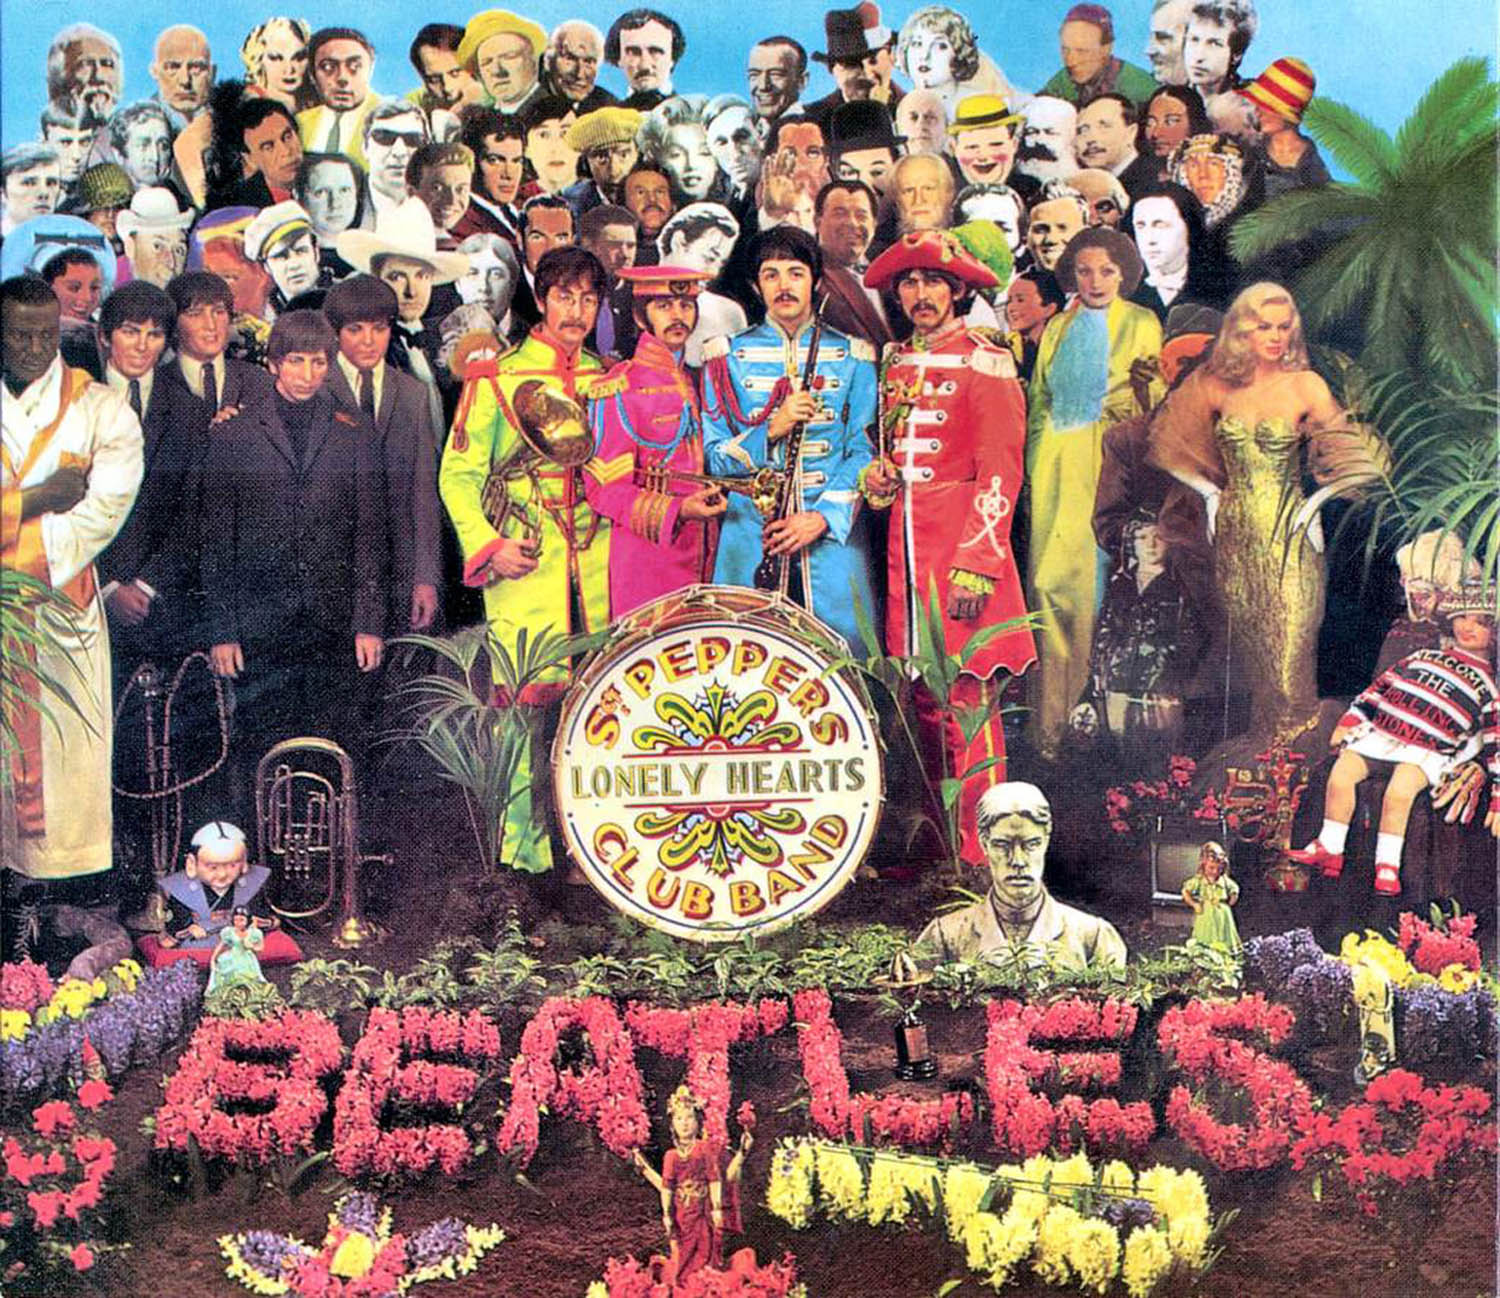 Sgt. Pepper's's Lonely Hearts Club Band (1967), copertina album The Beatles. Courtesy of Zazà ramen noodle bar & restaurant